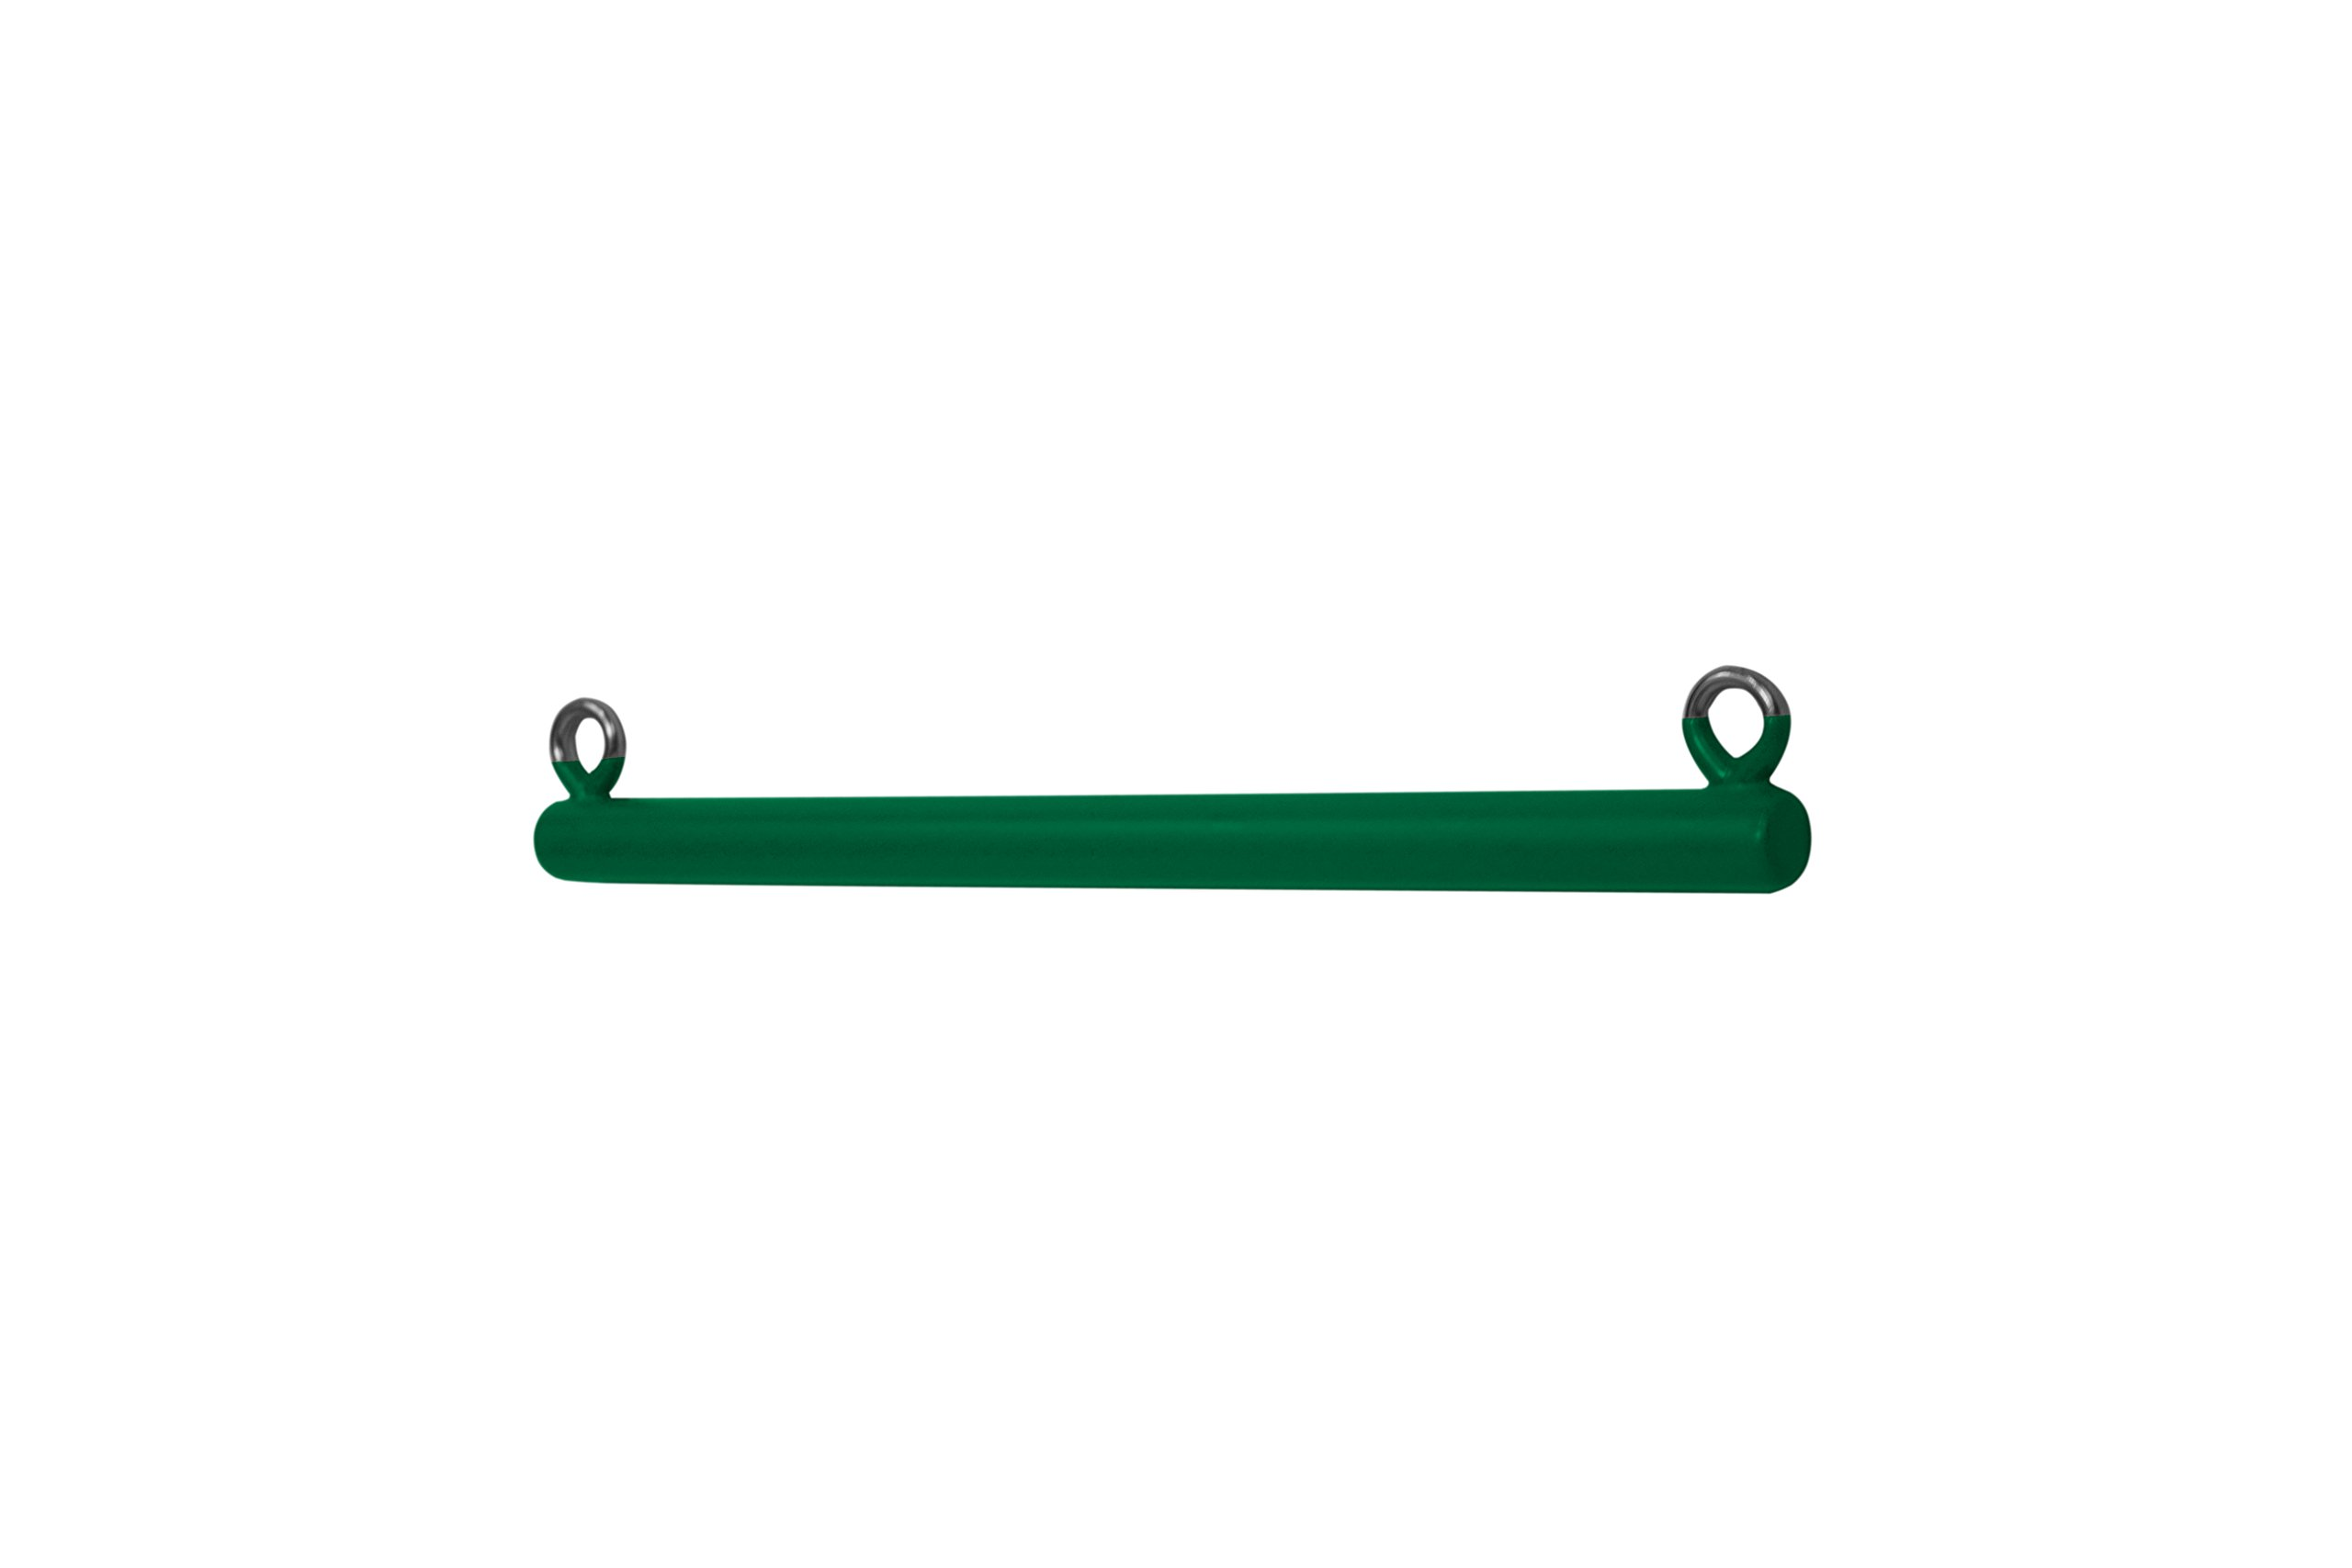 American Swing Green Trapeze Bar 20'' Long - Residential Only by American Swing Products